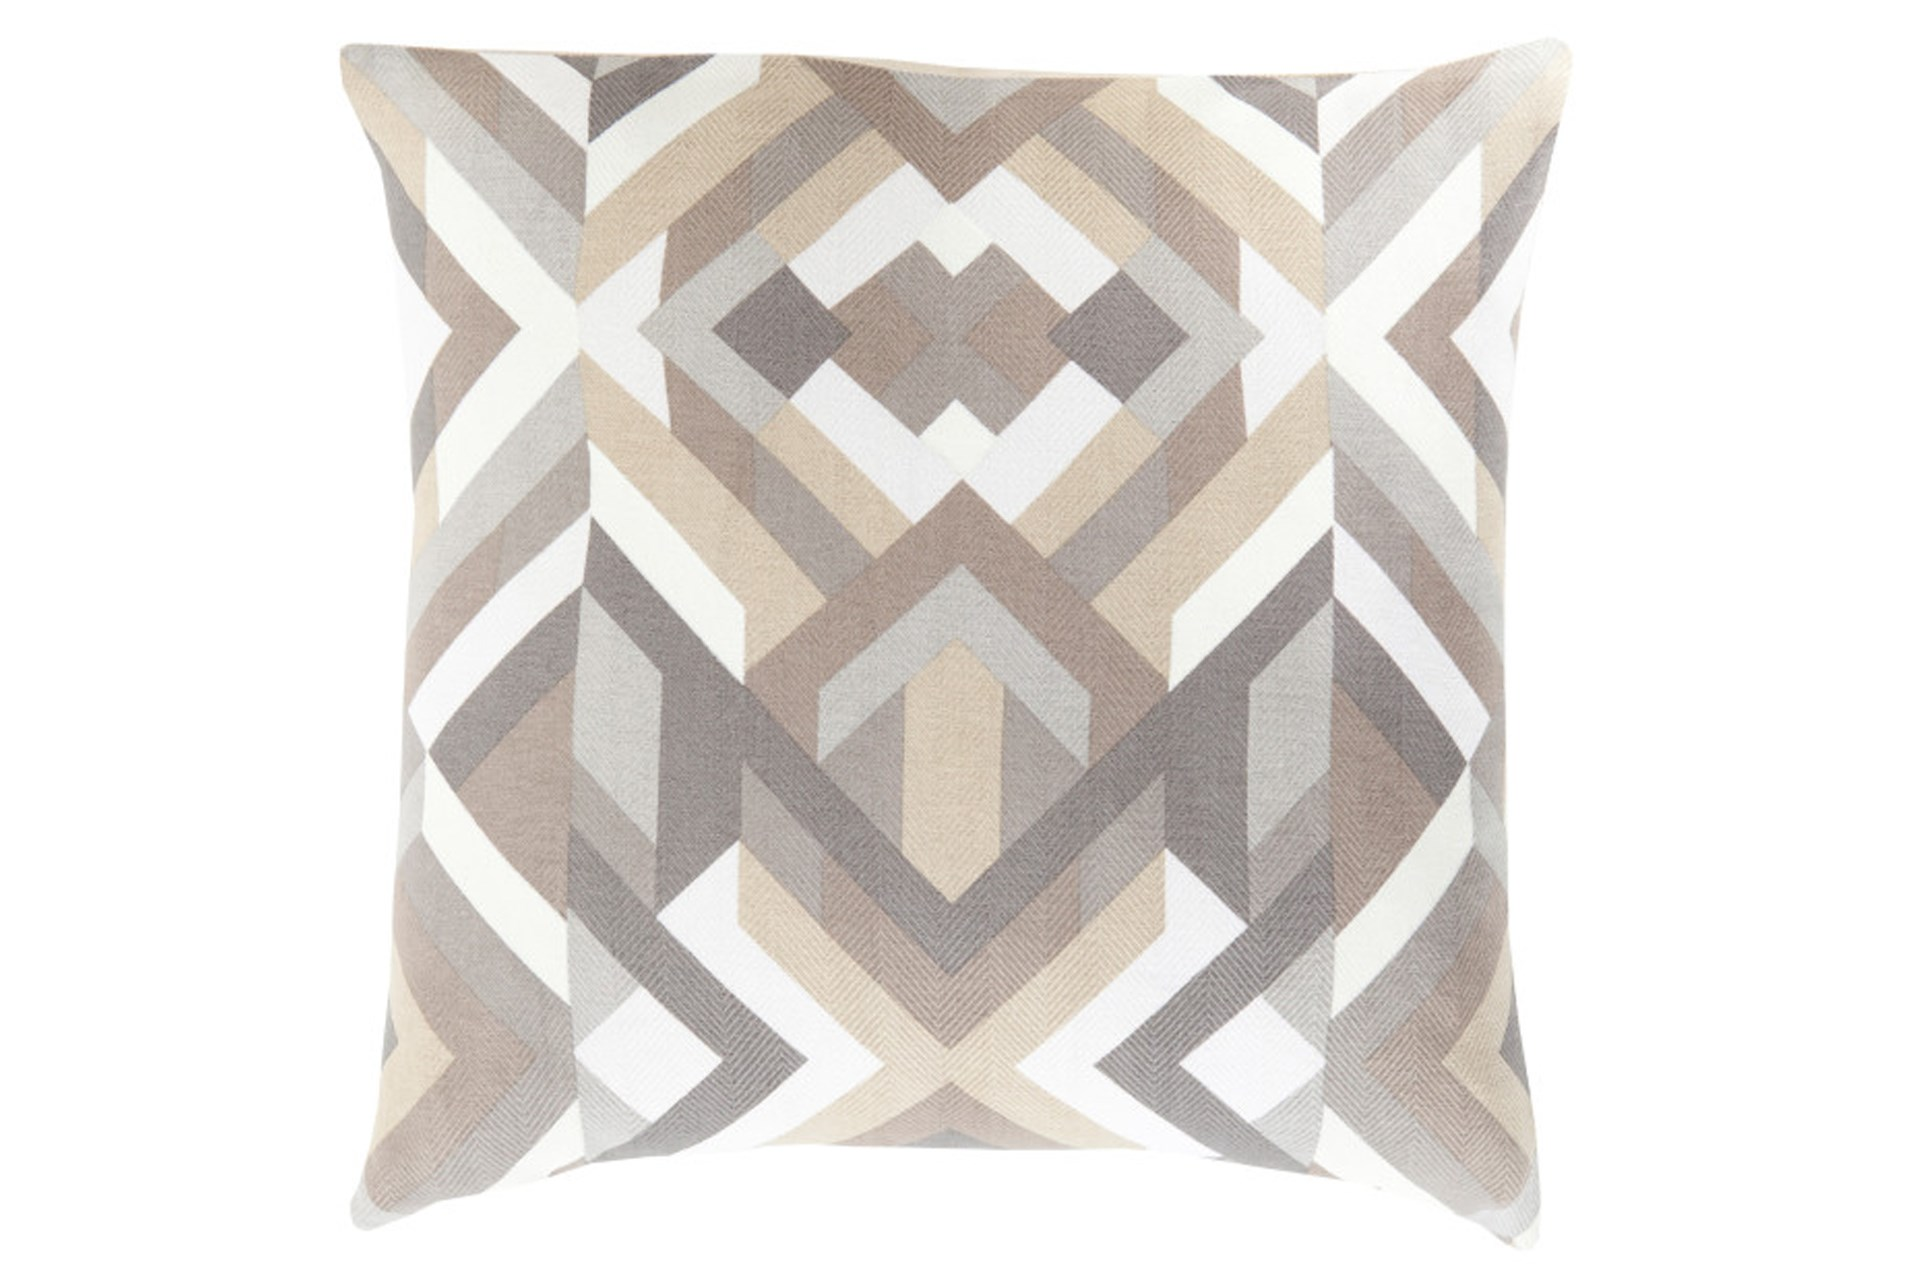 Decorative Pillows Living Spaces : Accent Pillow-Tora Woven Geo Grey Multi 22X22 Living Spaces